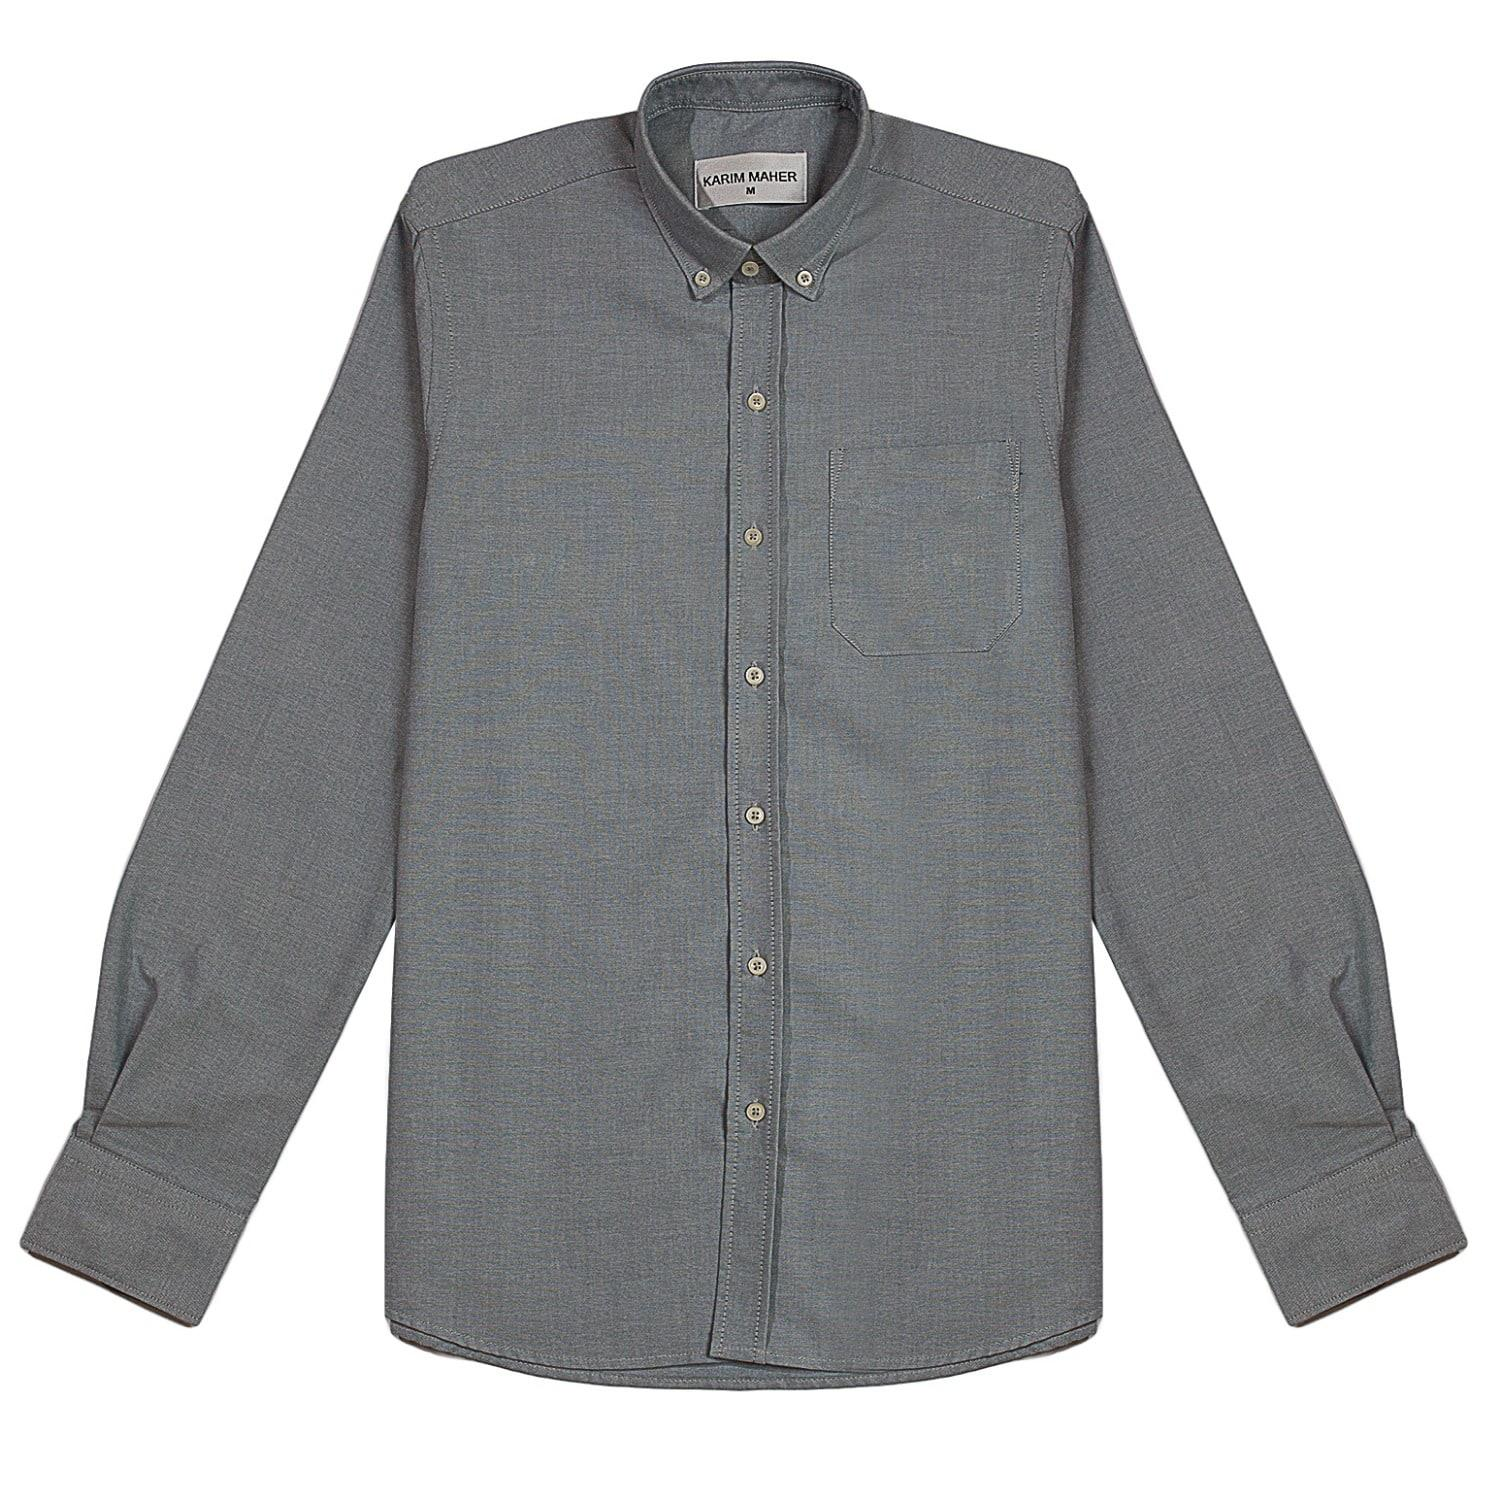 Lyst karim maher grey button down cotton oxford shirt in for Grey button down shirt